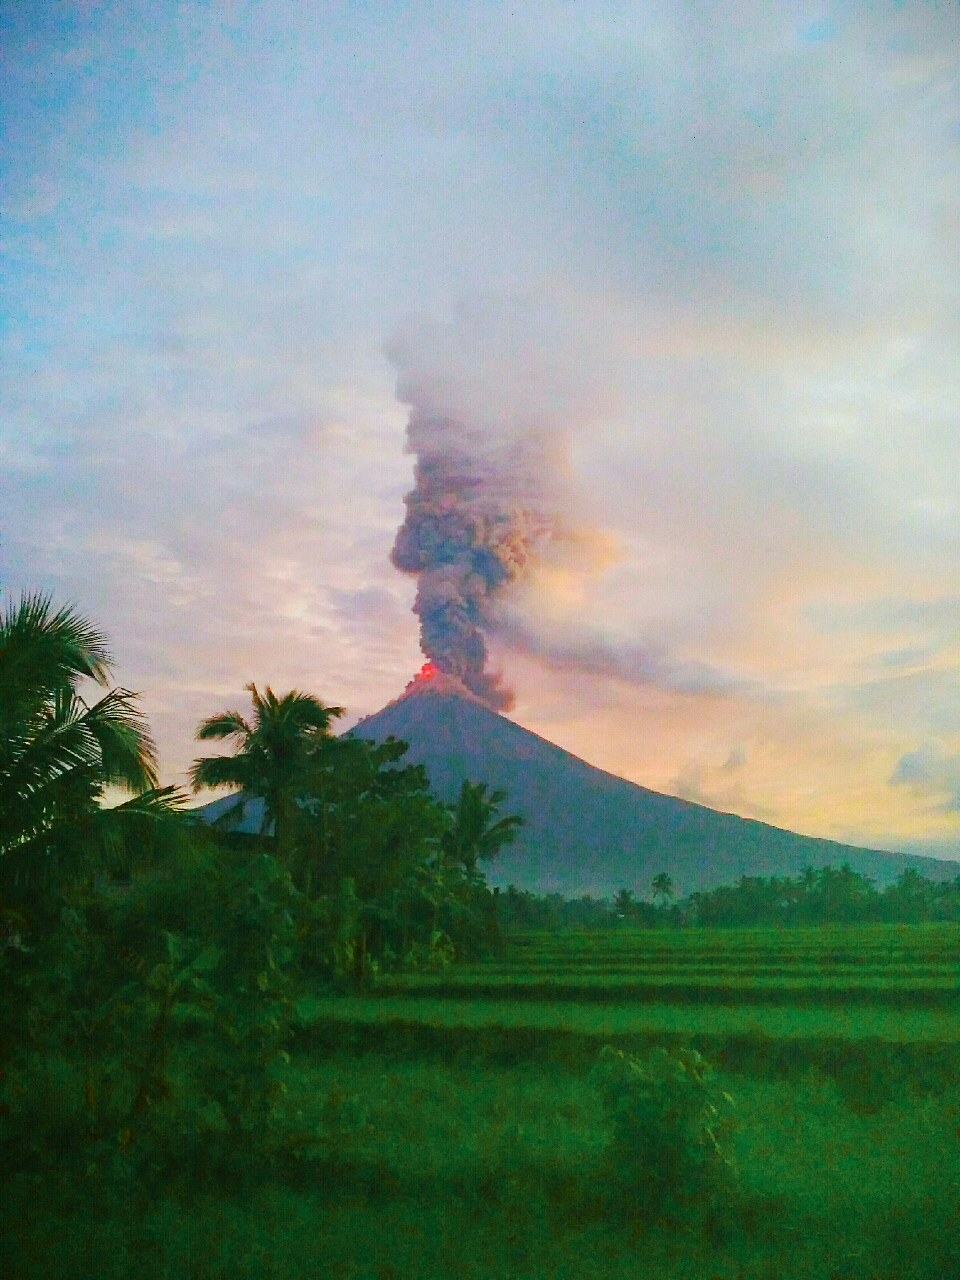 the day before mayon volcano eruption A volcanic eruption can cause tremors, while a large temblor can rattle a magma chamber underneath a volcano, causing towers of ash and rivers of lava to gush forth.